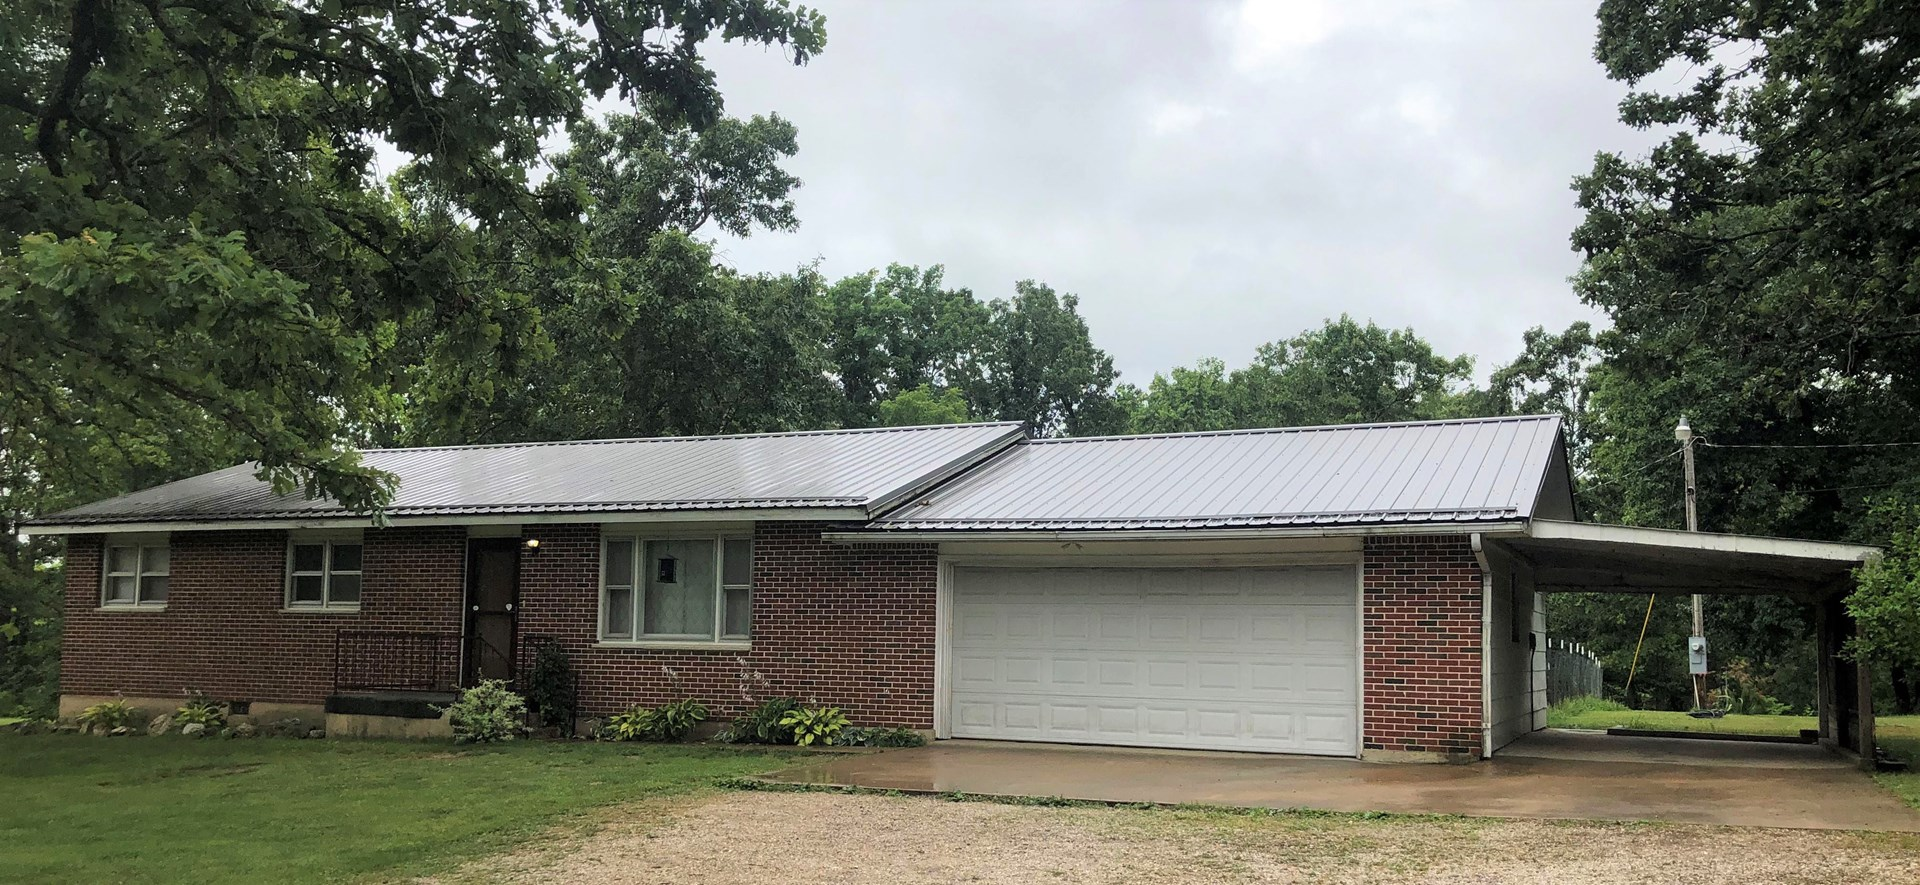 3 Bedroom Ranch home located outside Salem city limits!